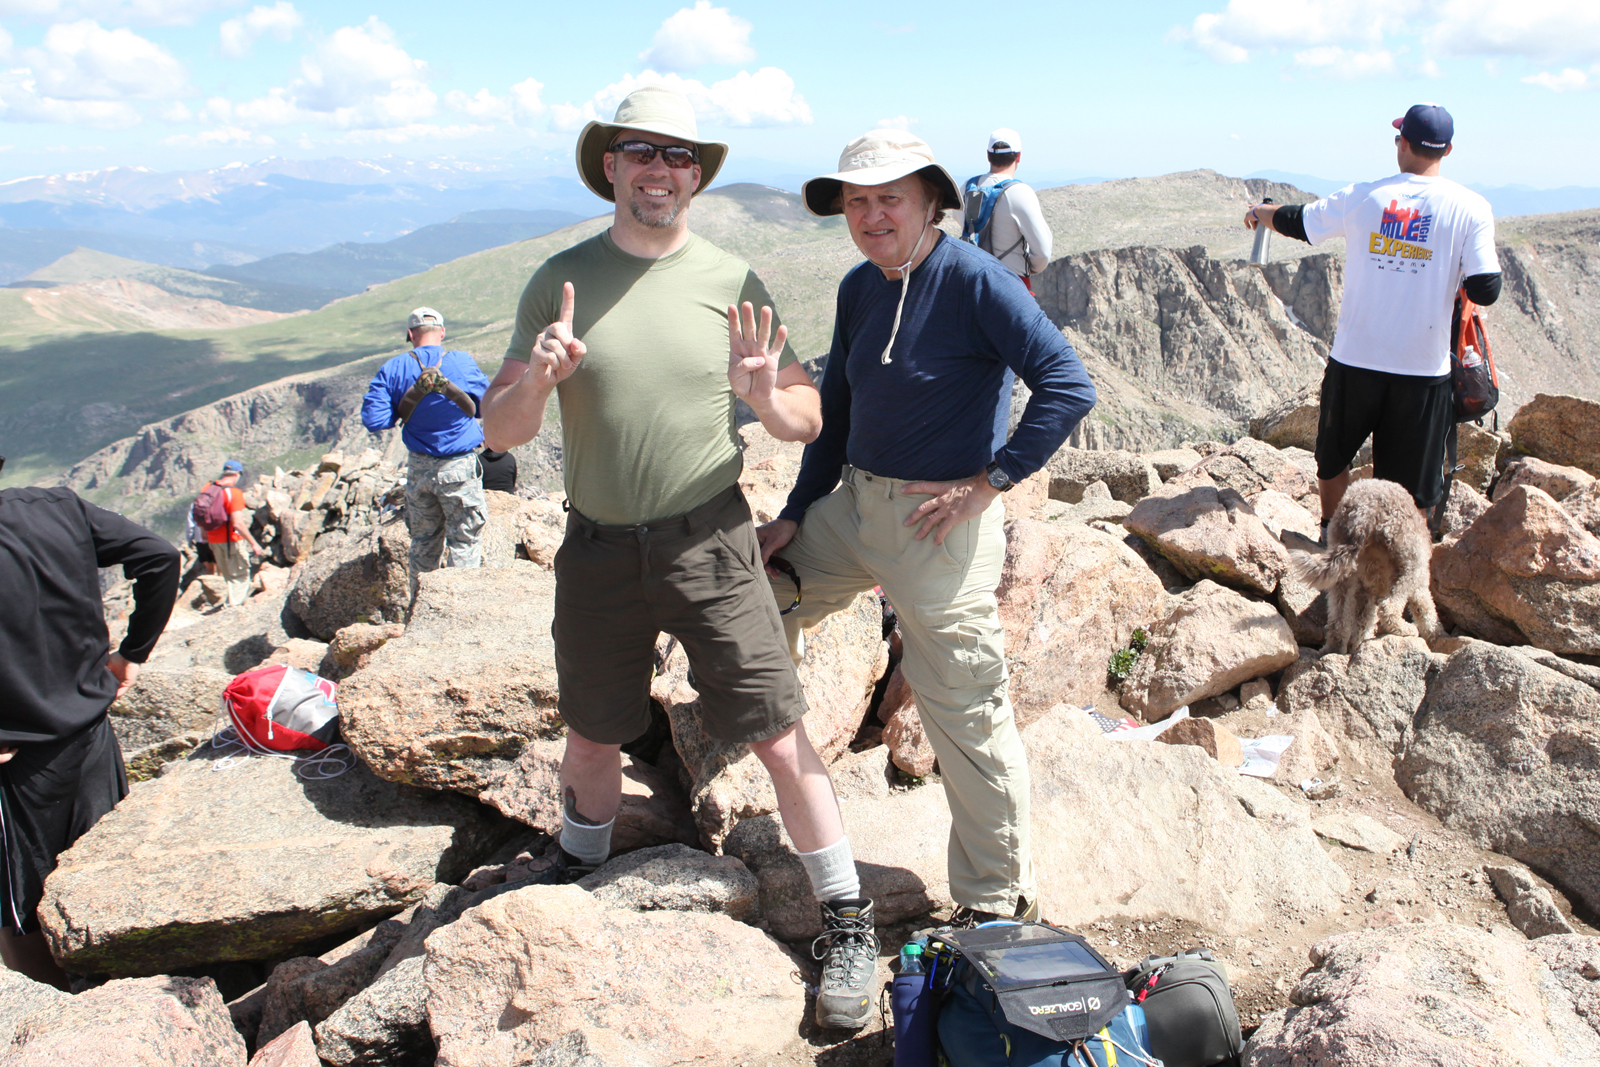 My Dad and I on the Mount Bierstadt summit 14,060 ft.